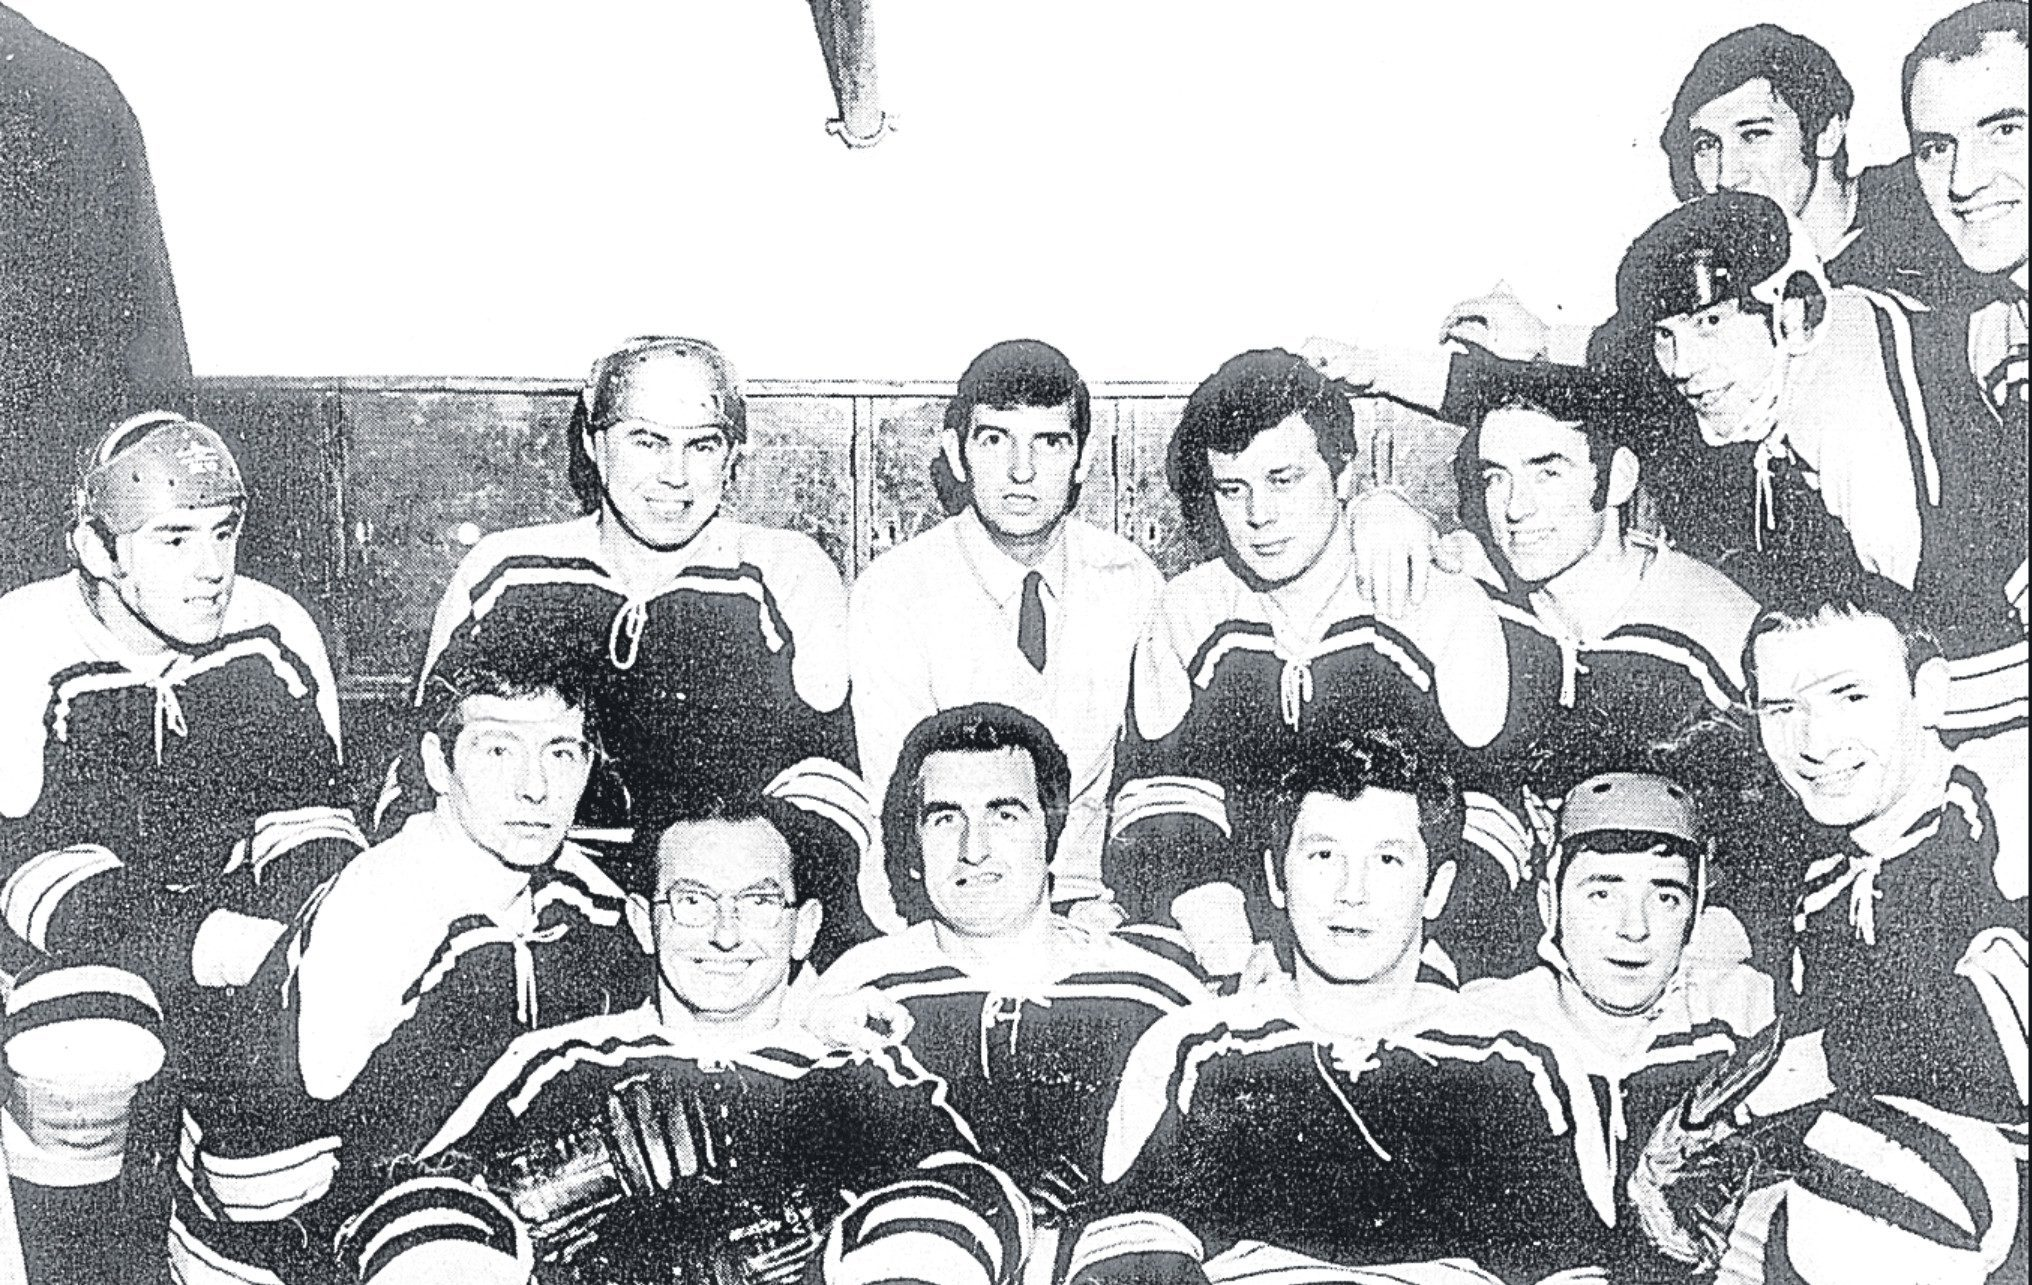 The Dundee Rockets team from 1969. Back row (from left) — Danny Stewart, Jim Black, Marshall Key, Chris Farrell, Tom Stewart, Willie Murray, Mike Grieve (partly hidden), Andy Baxter. Front row — Bert Ross, Molly Reid, George Reid, Graeme Phillip, Alec Bennet, Brian Slater.